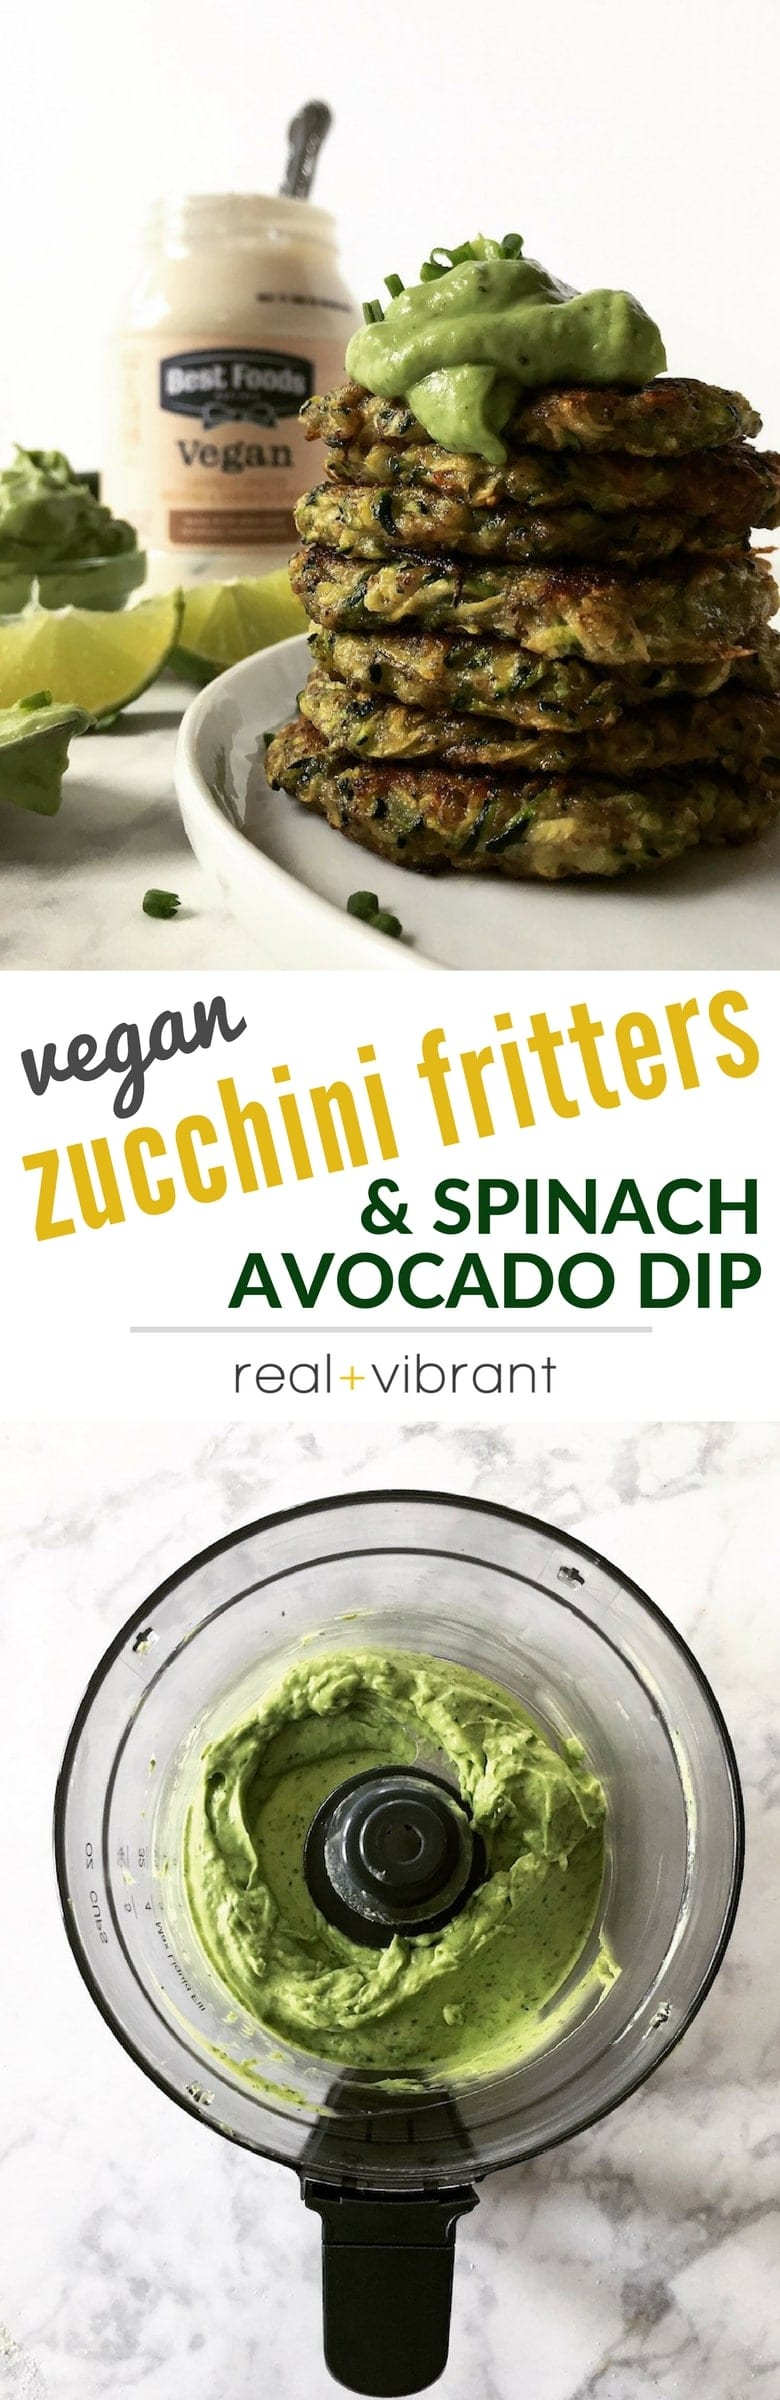 Vegan Zucchini Fritters and Avocado Dip - This delicious snack will make you fall in love with eating healthy! | www.realandvibrant.com